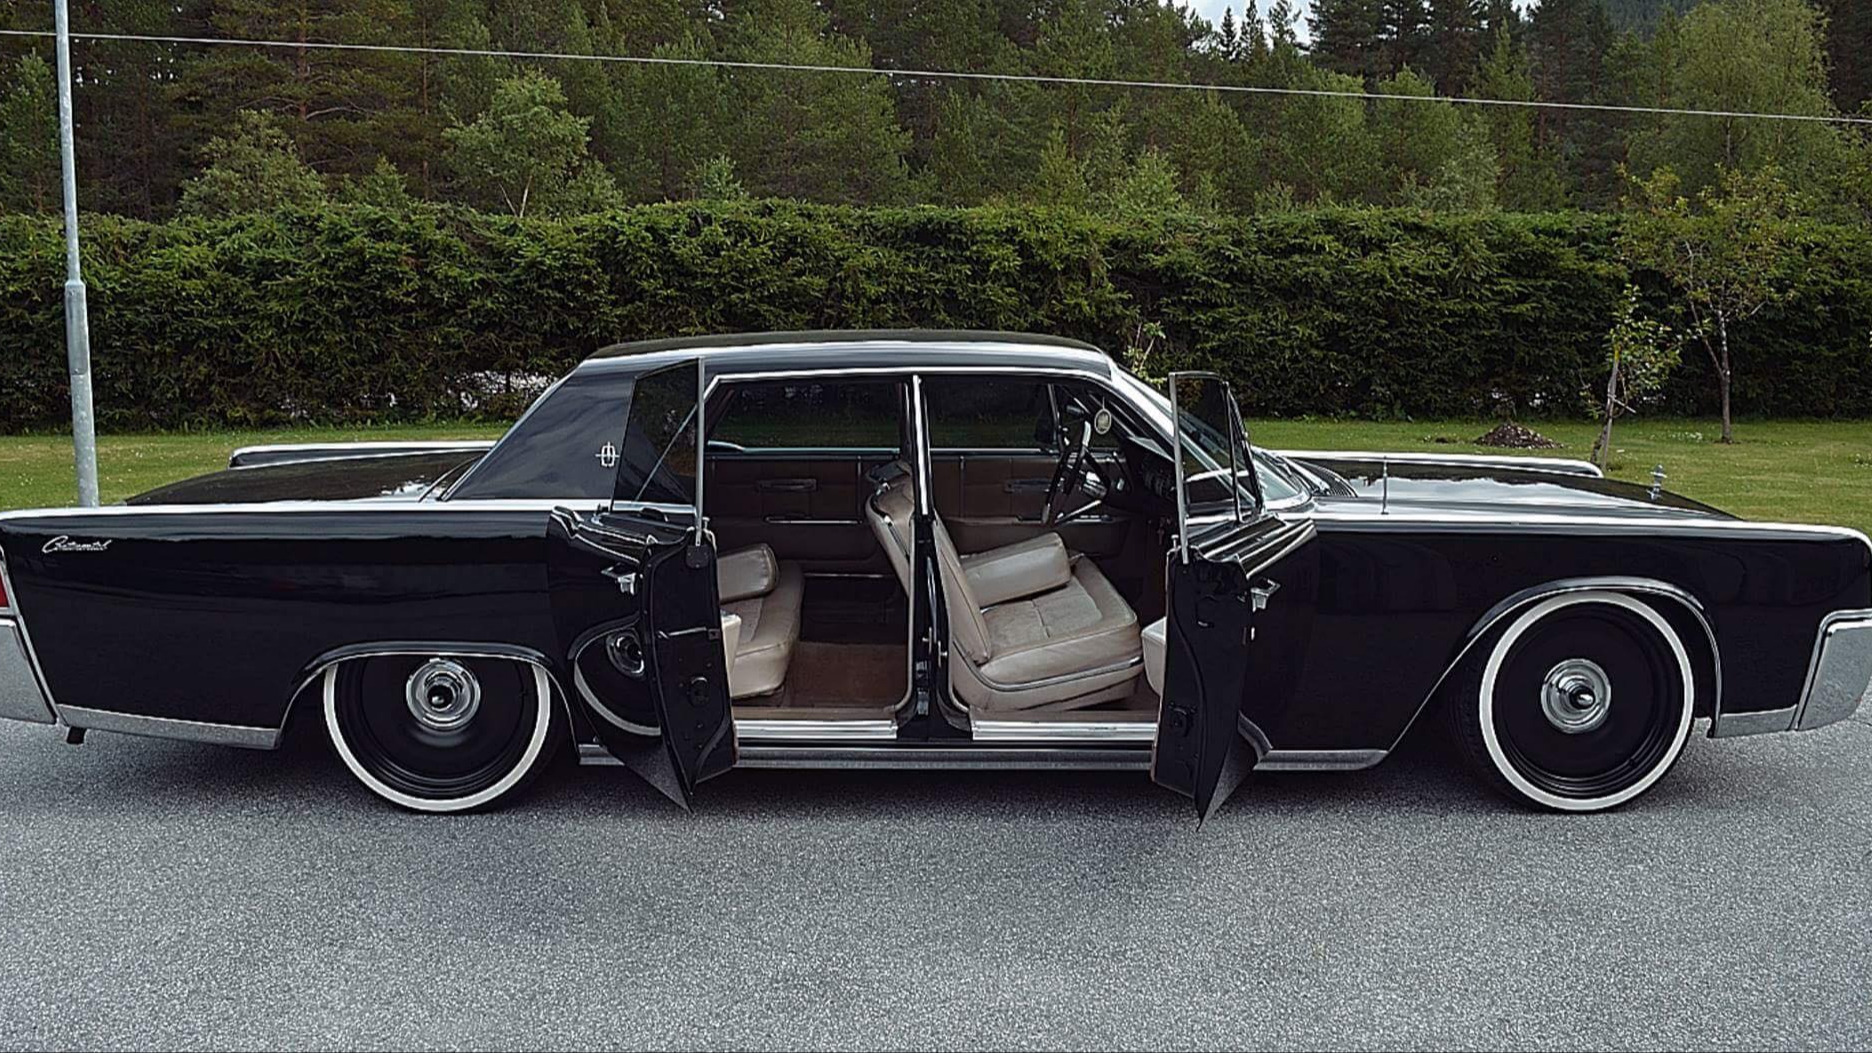 Ukas bil - 1964 Lincoln Continental